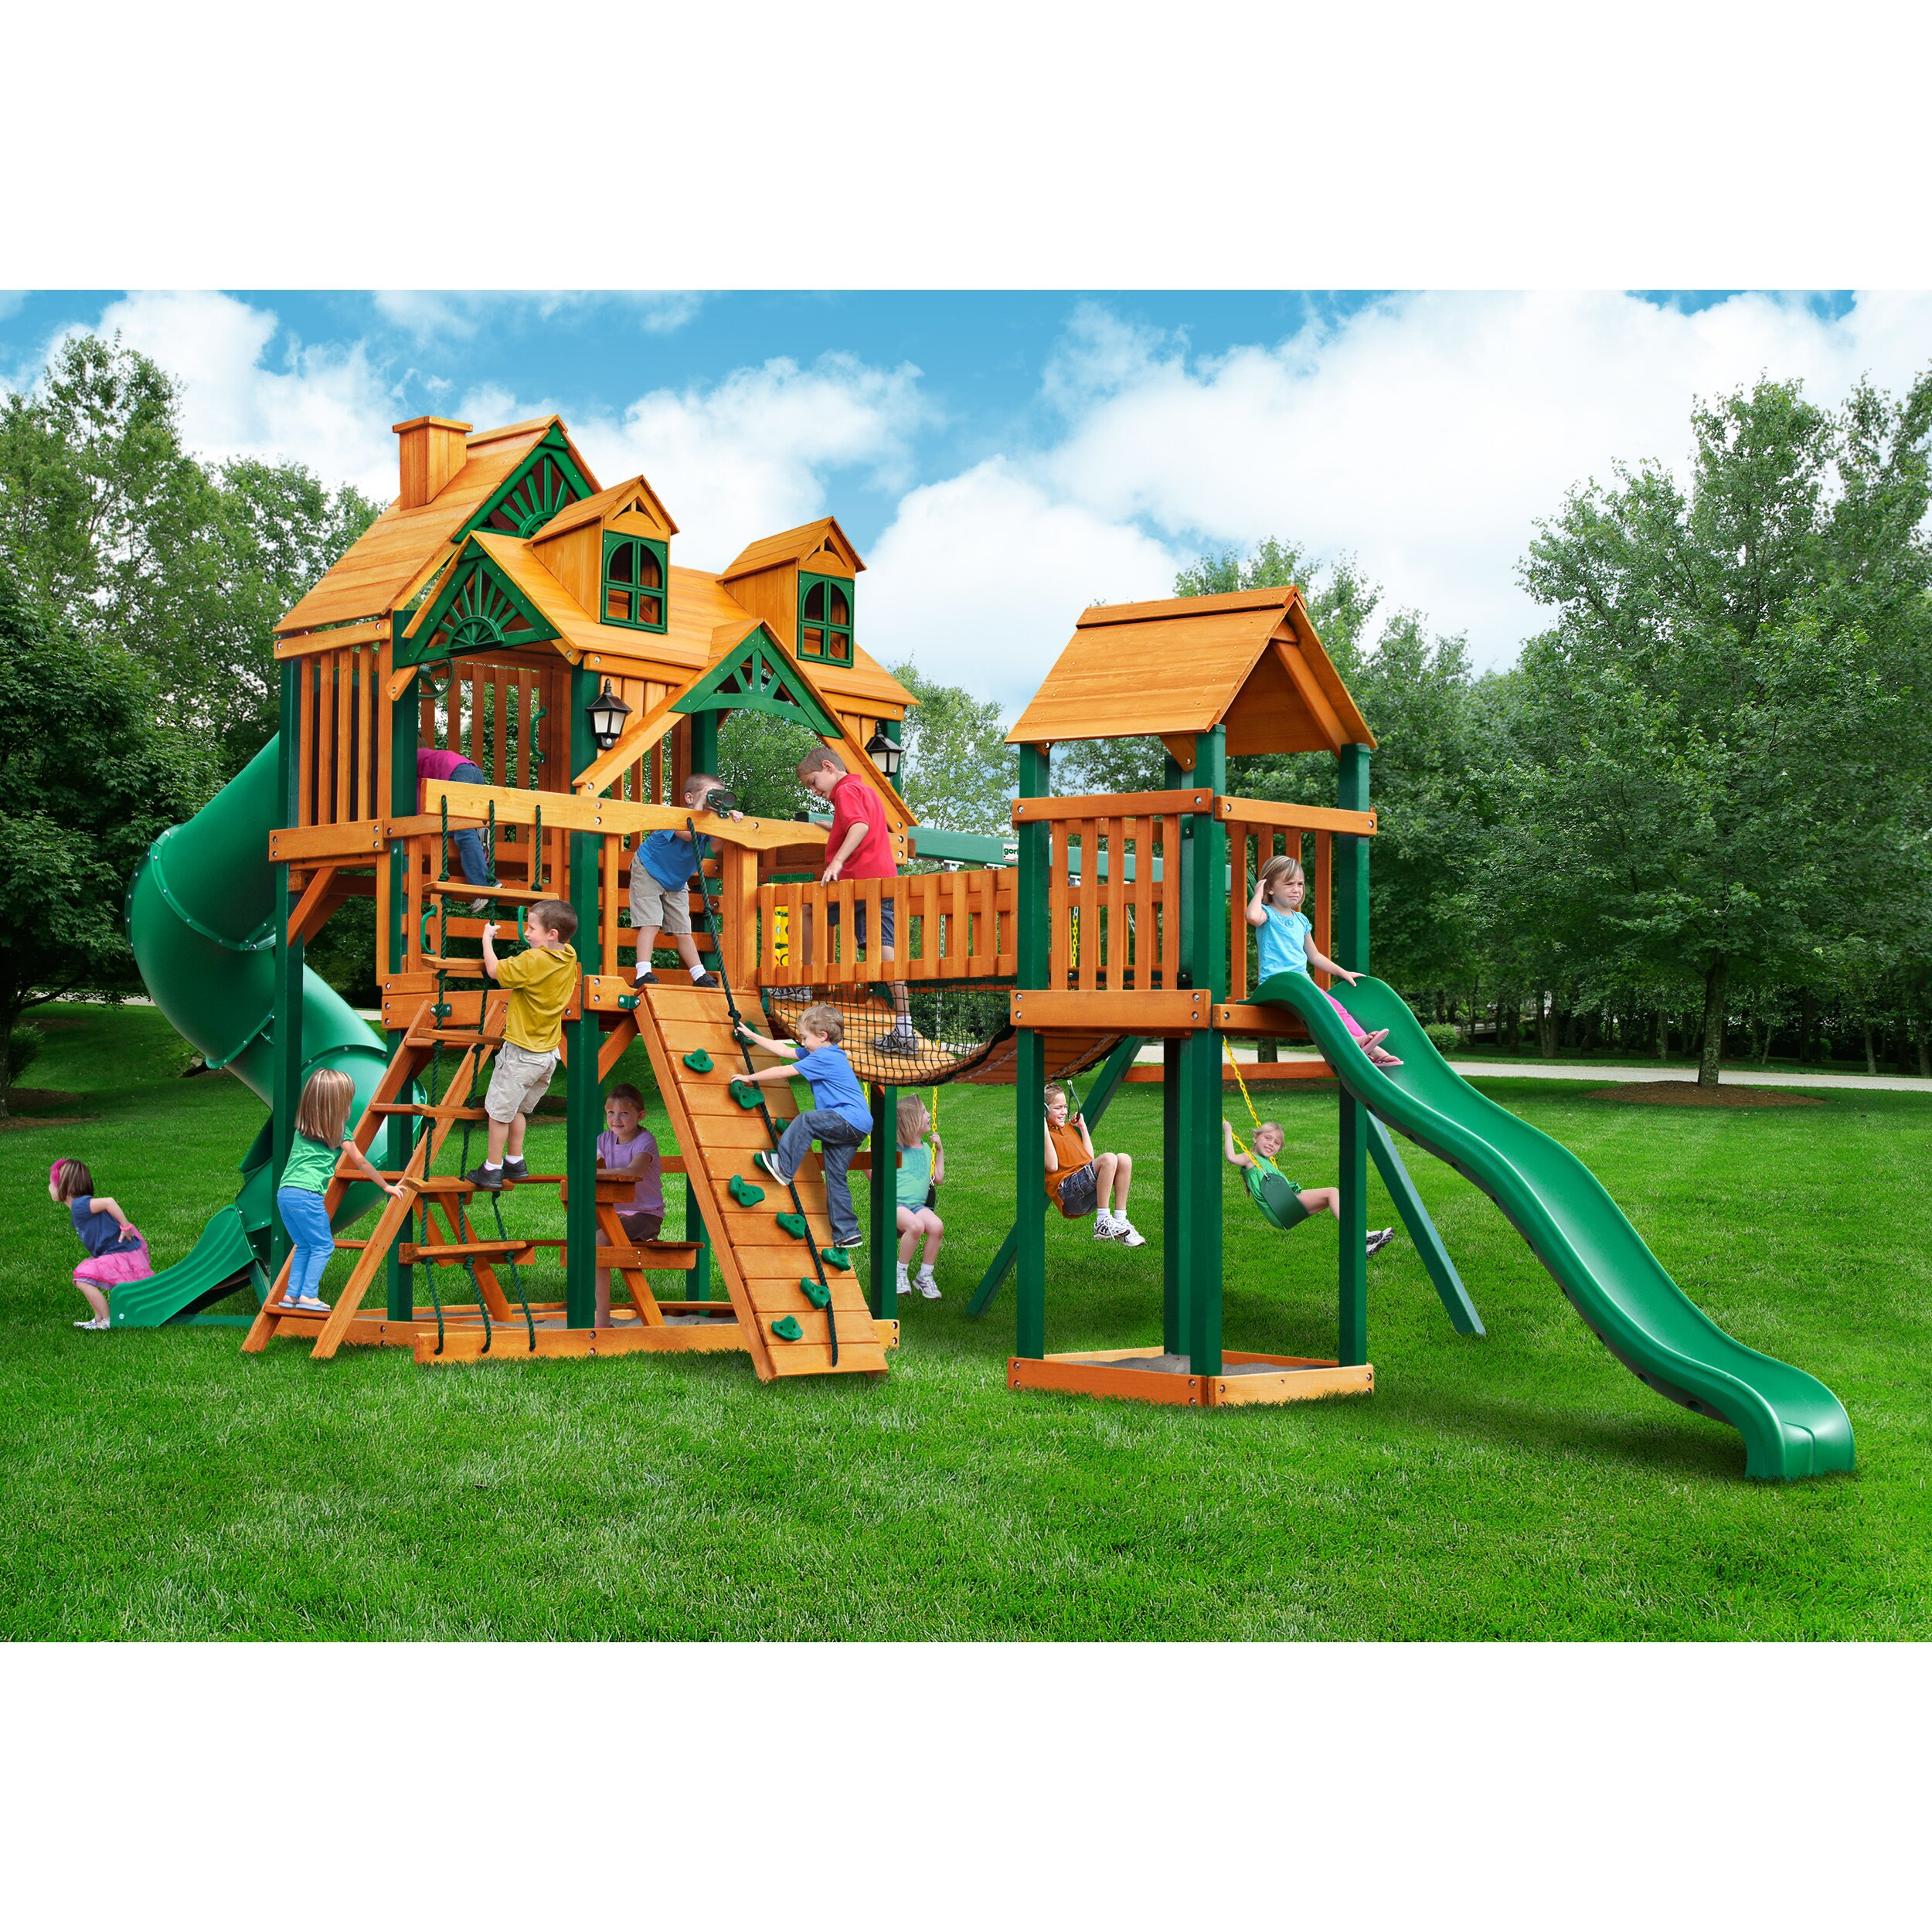 Gorilla Playsets Malibu Treasure Trove I Swing Set